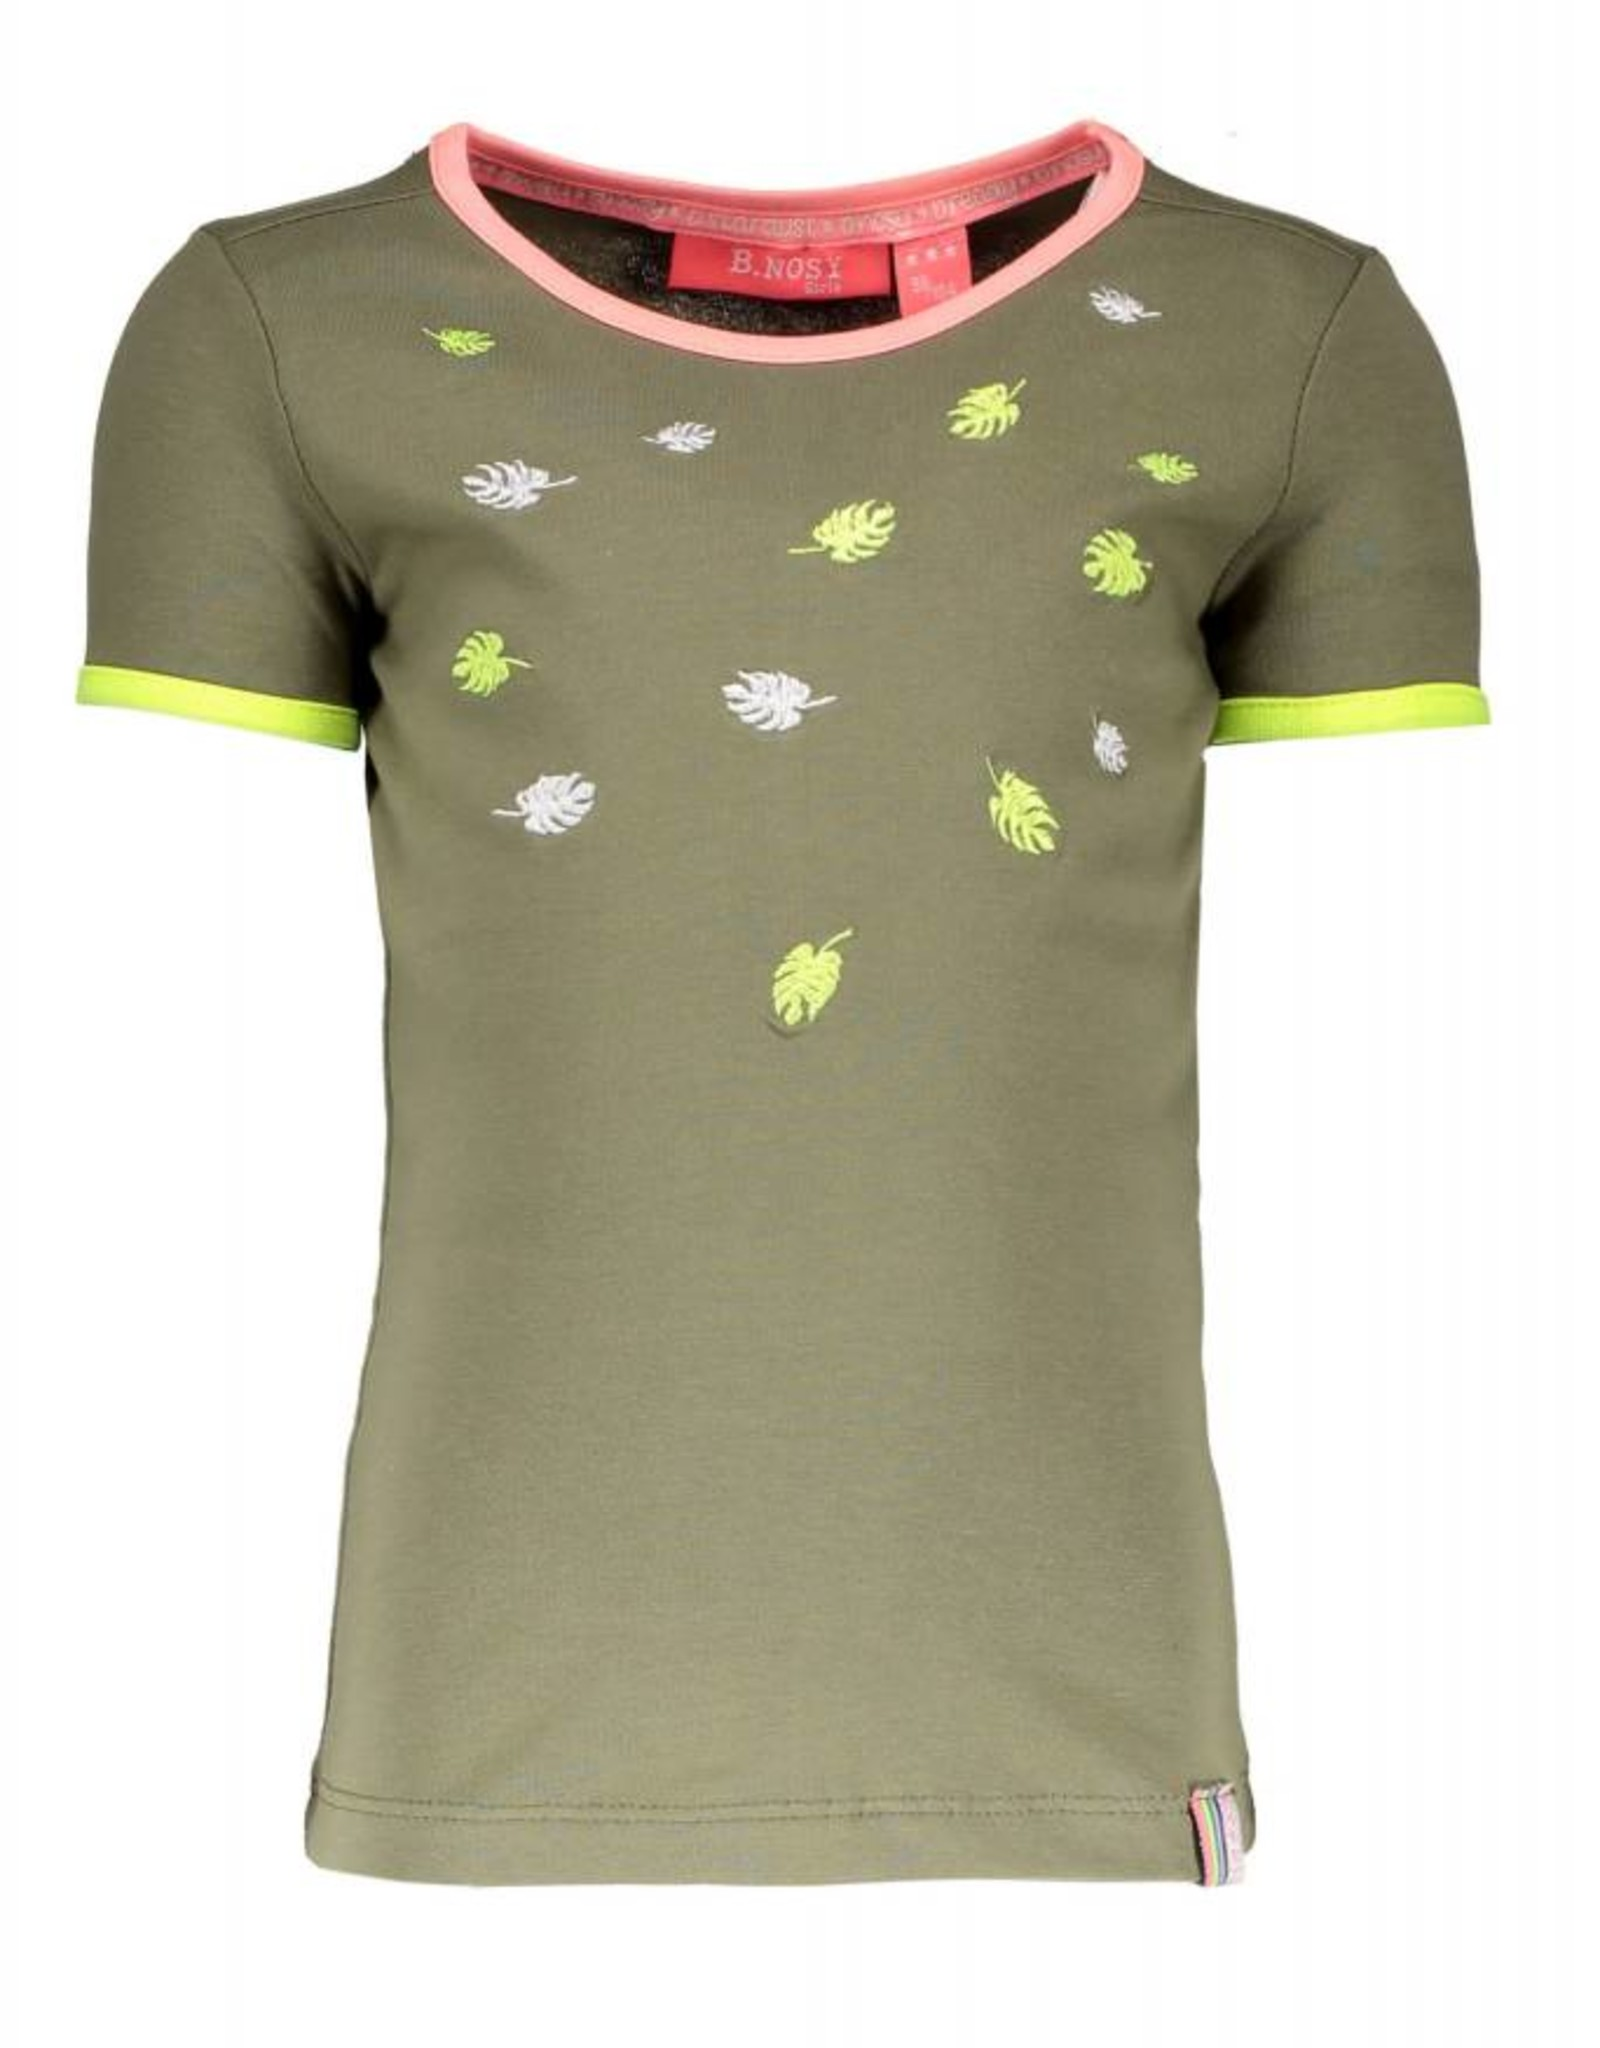 B. Nosy Girls ss leaves embroidery shirt